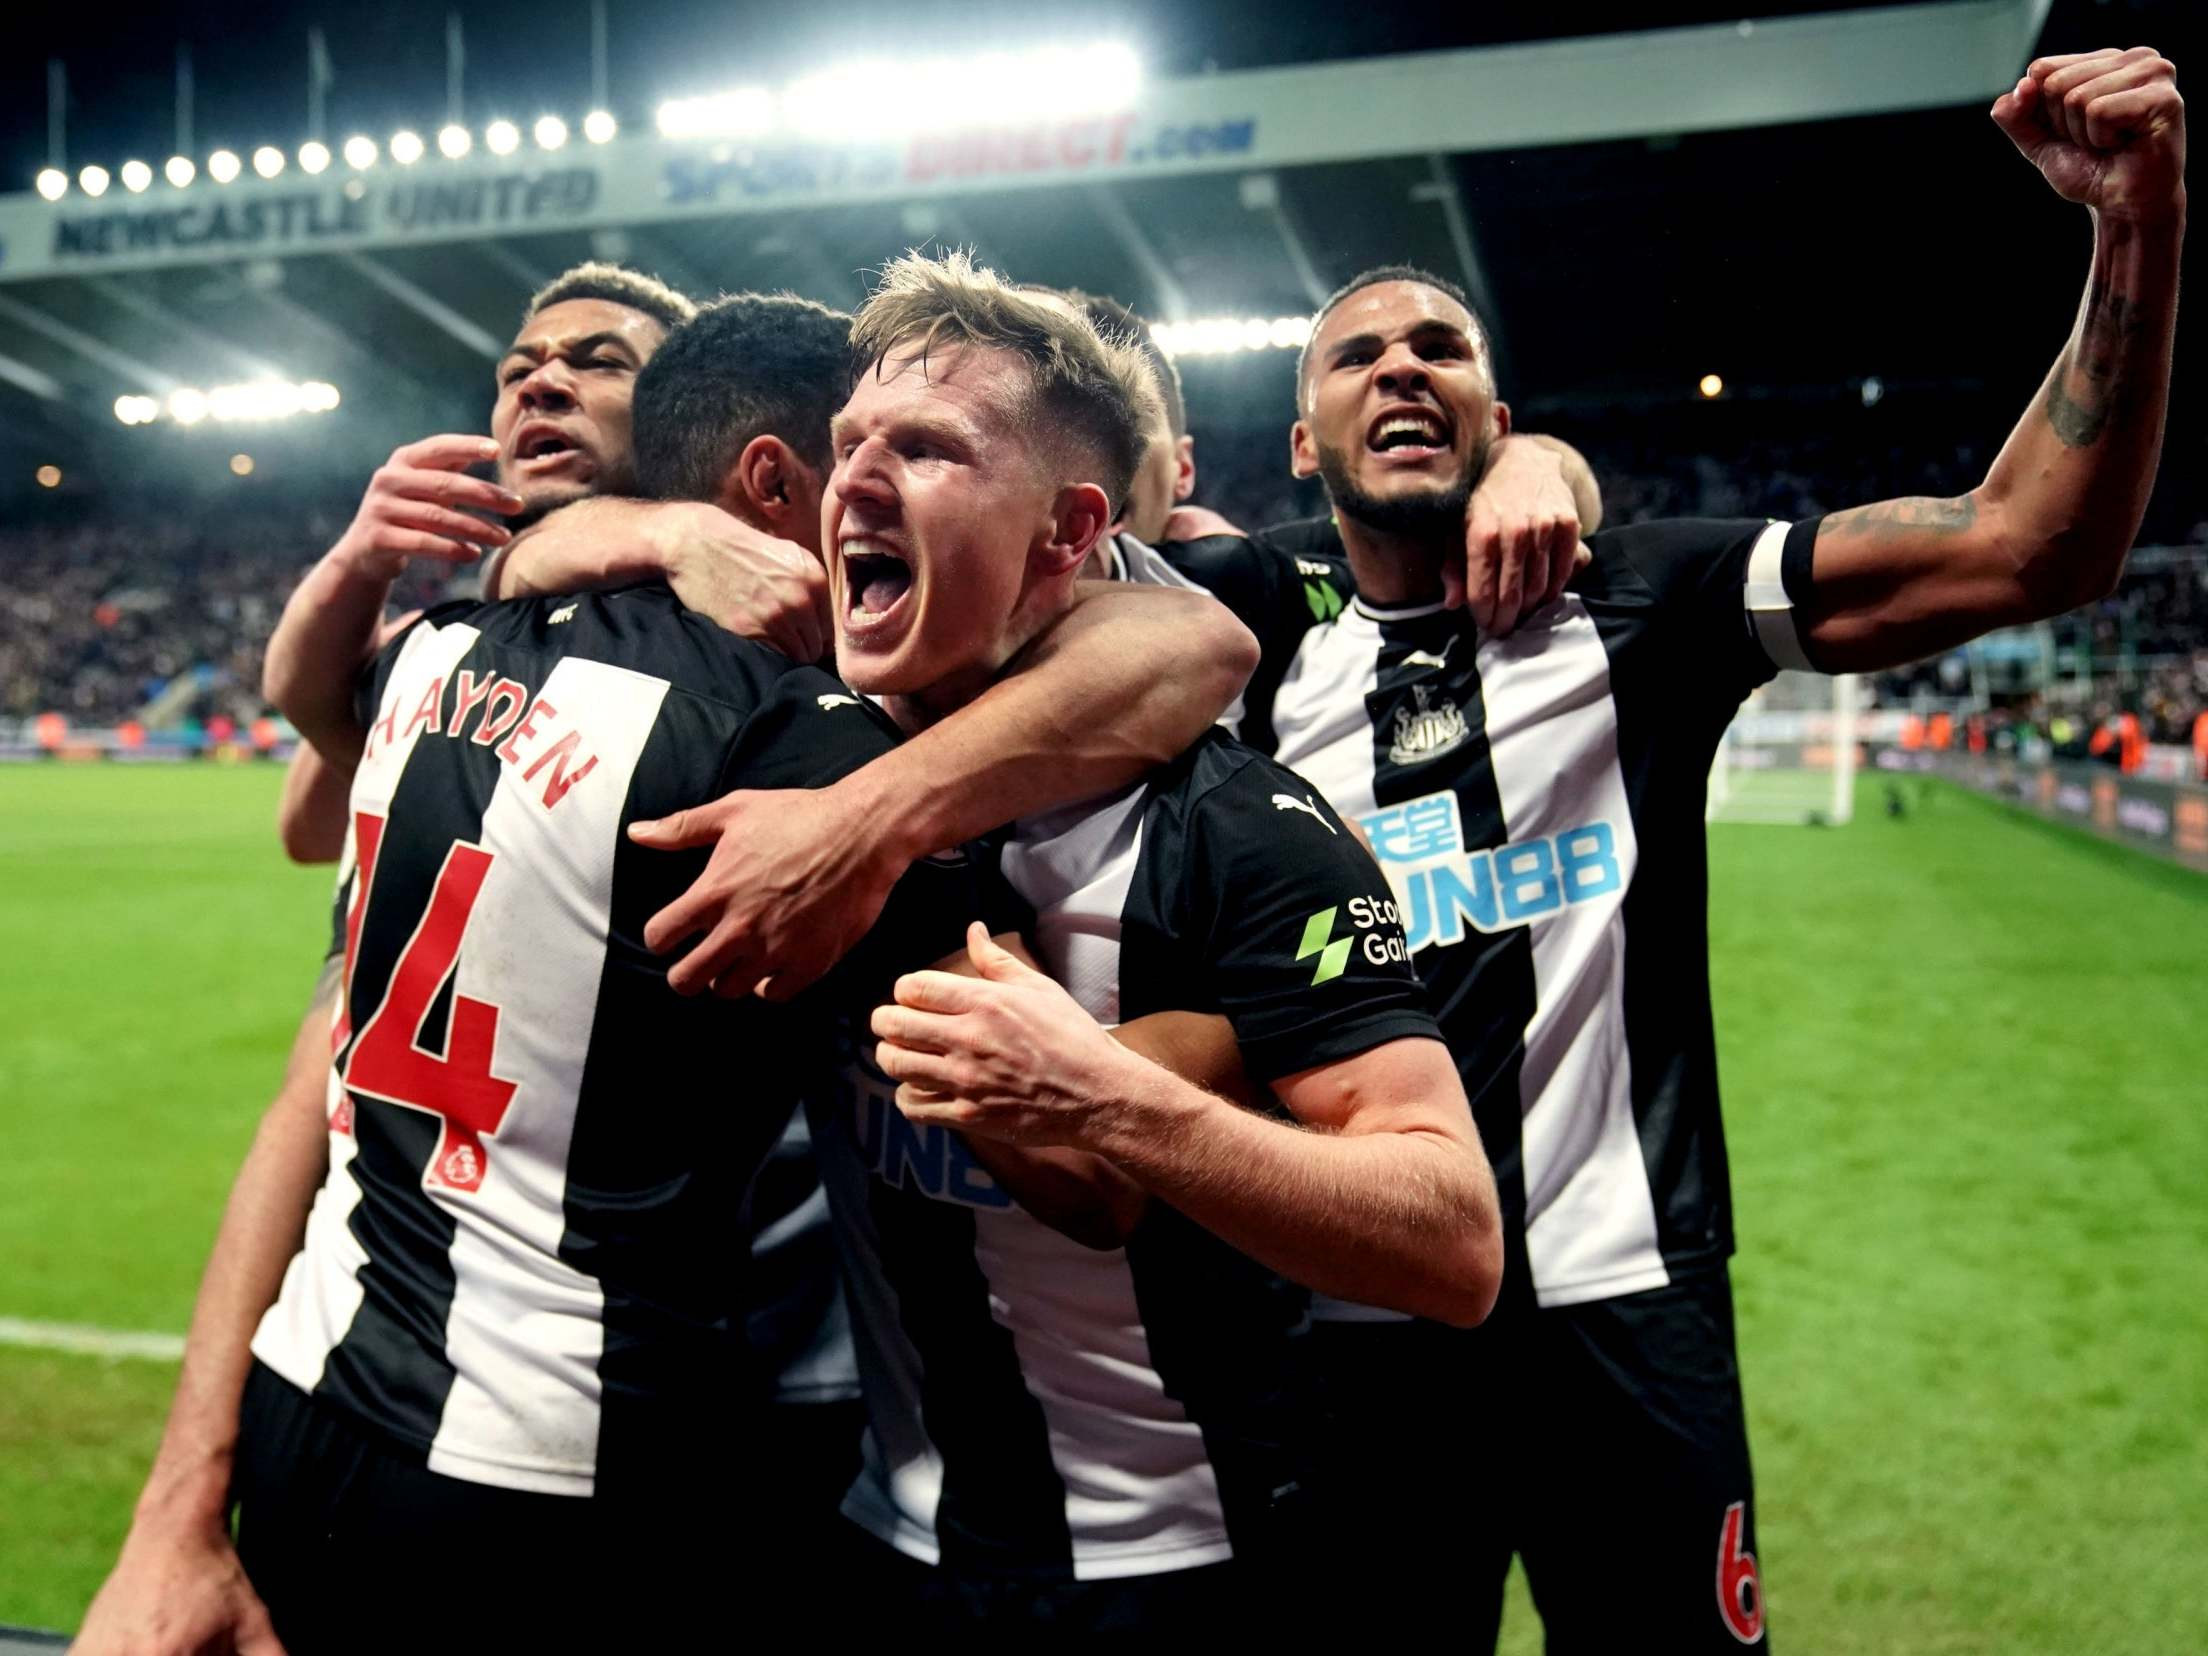 Newcastle Vs Chelsea Isaac Hayden On His Match winning Goal The Independent The Independent